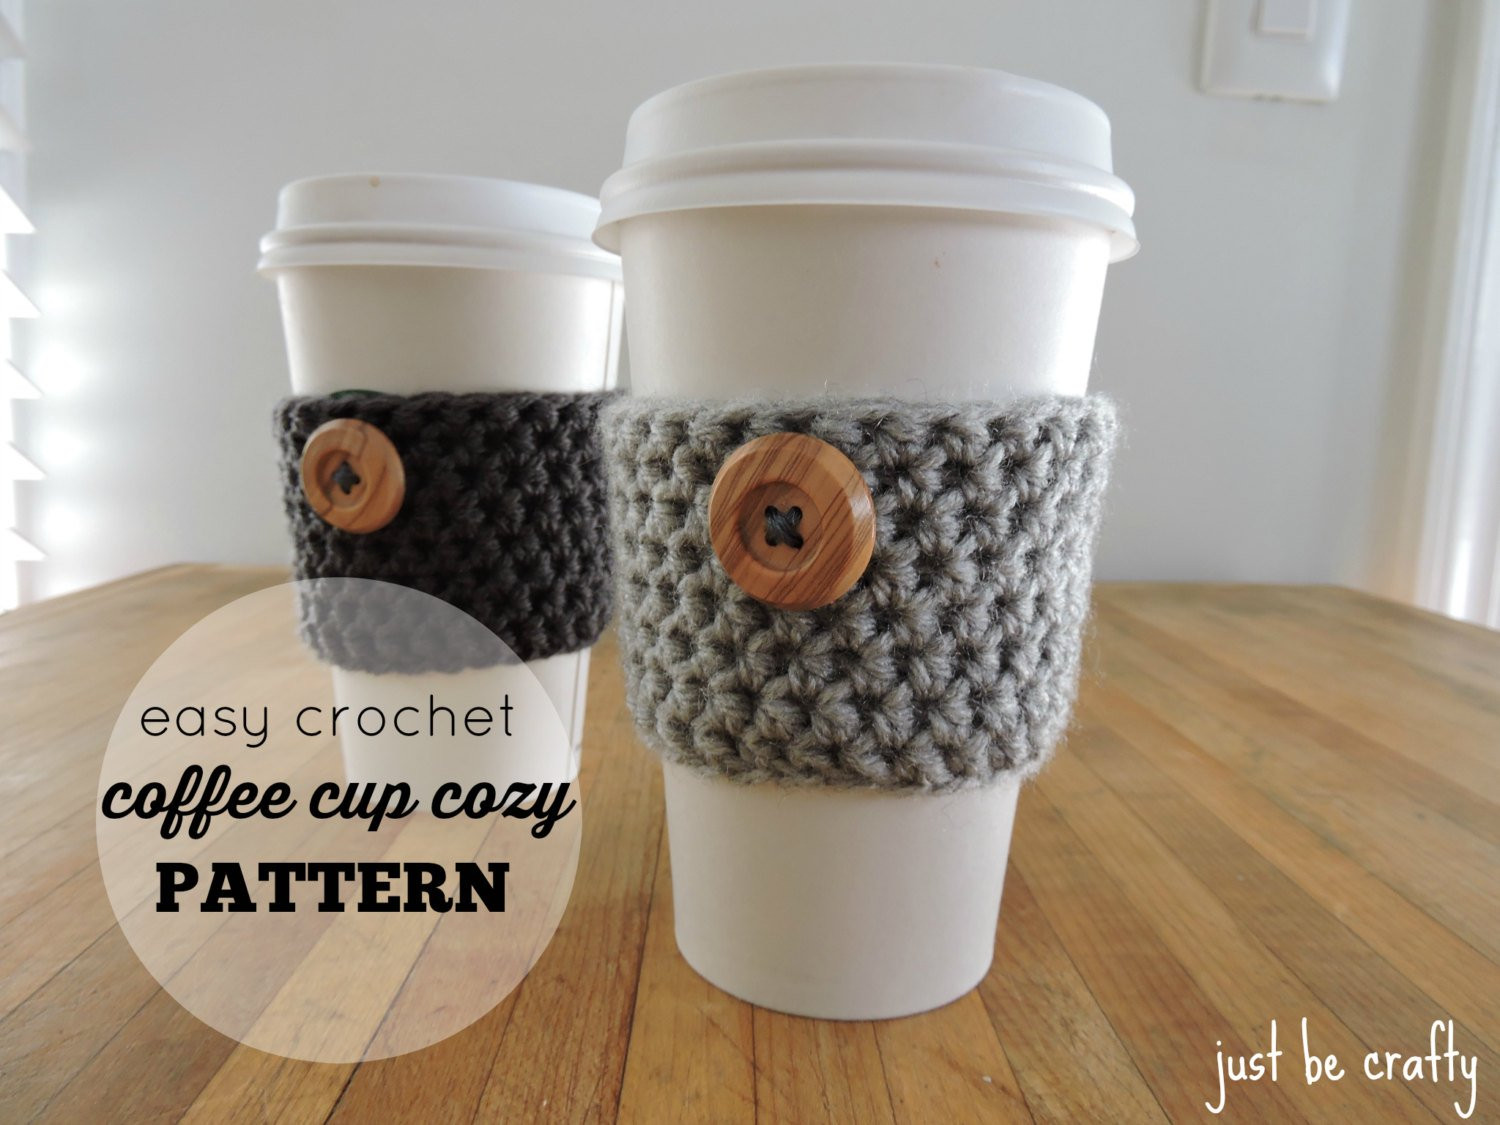 Crochet Coffee Cup Cozy Inspirational Crochet Coffee Cup Cozy Pattern Pdf Download Coffee Cup Cozy Of Crochet Coffee Cup Cozy Inspirational Crochet Class Beginning Crochet Sparkleez Crystles